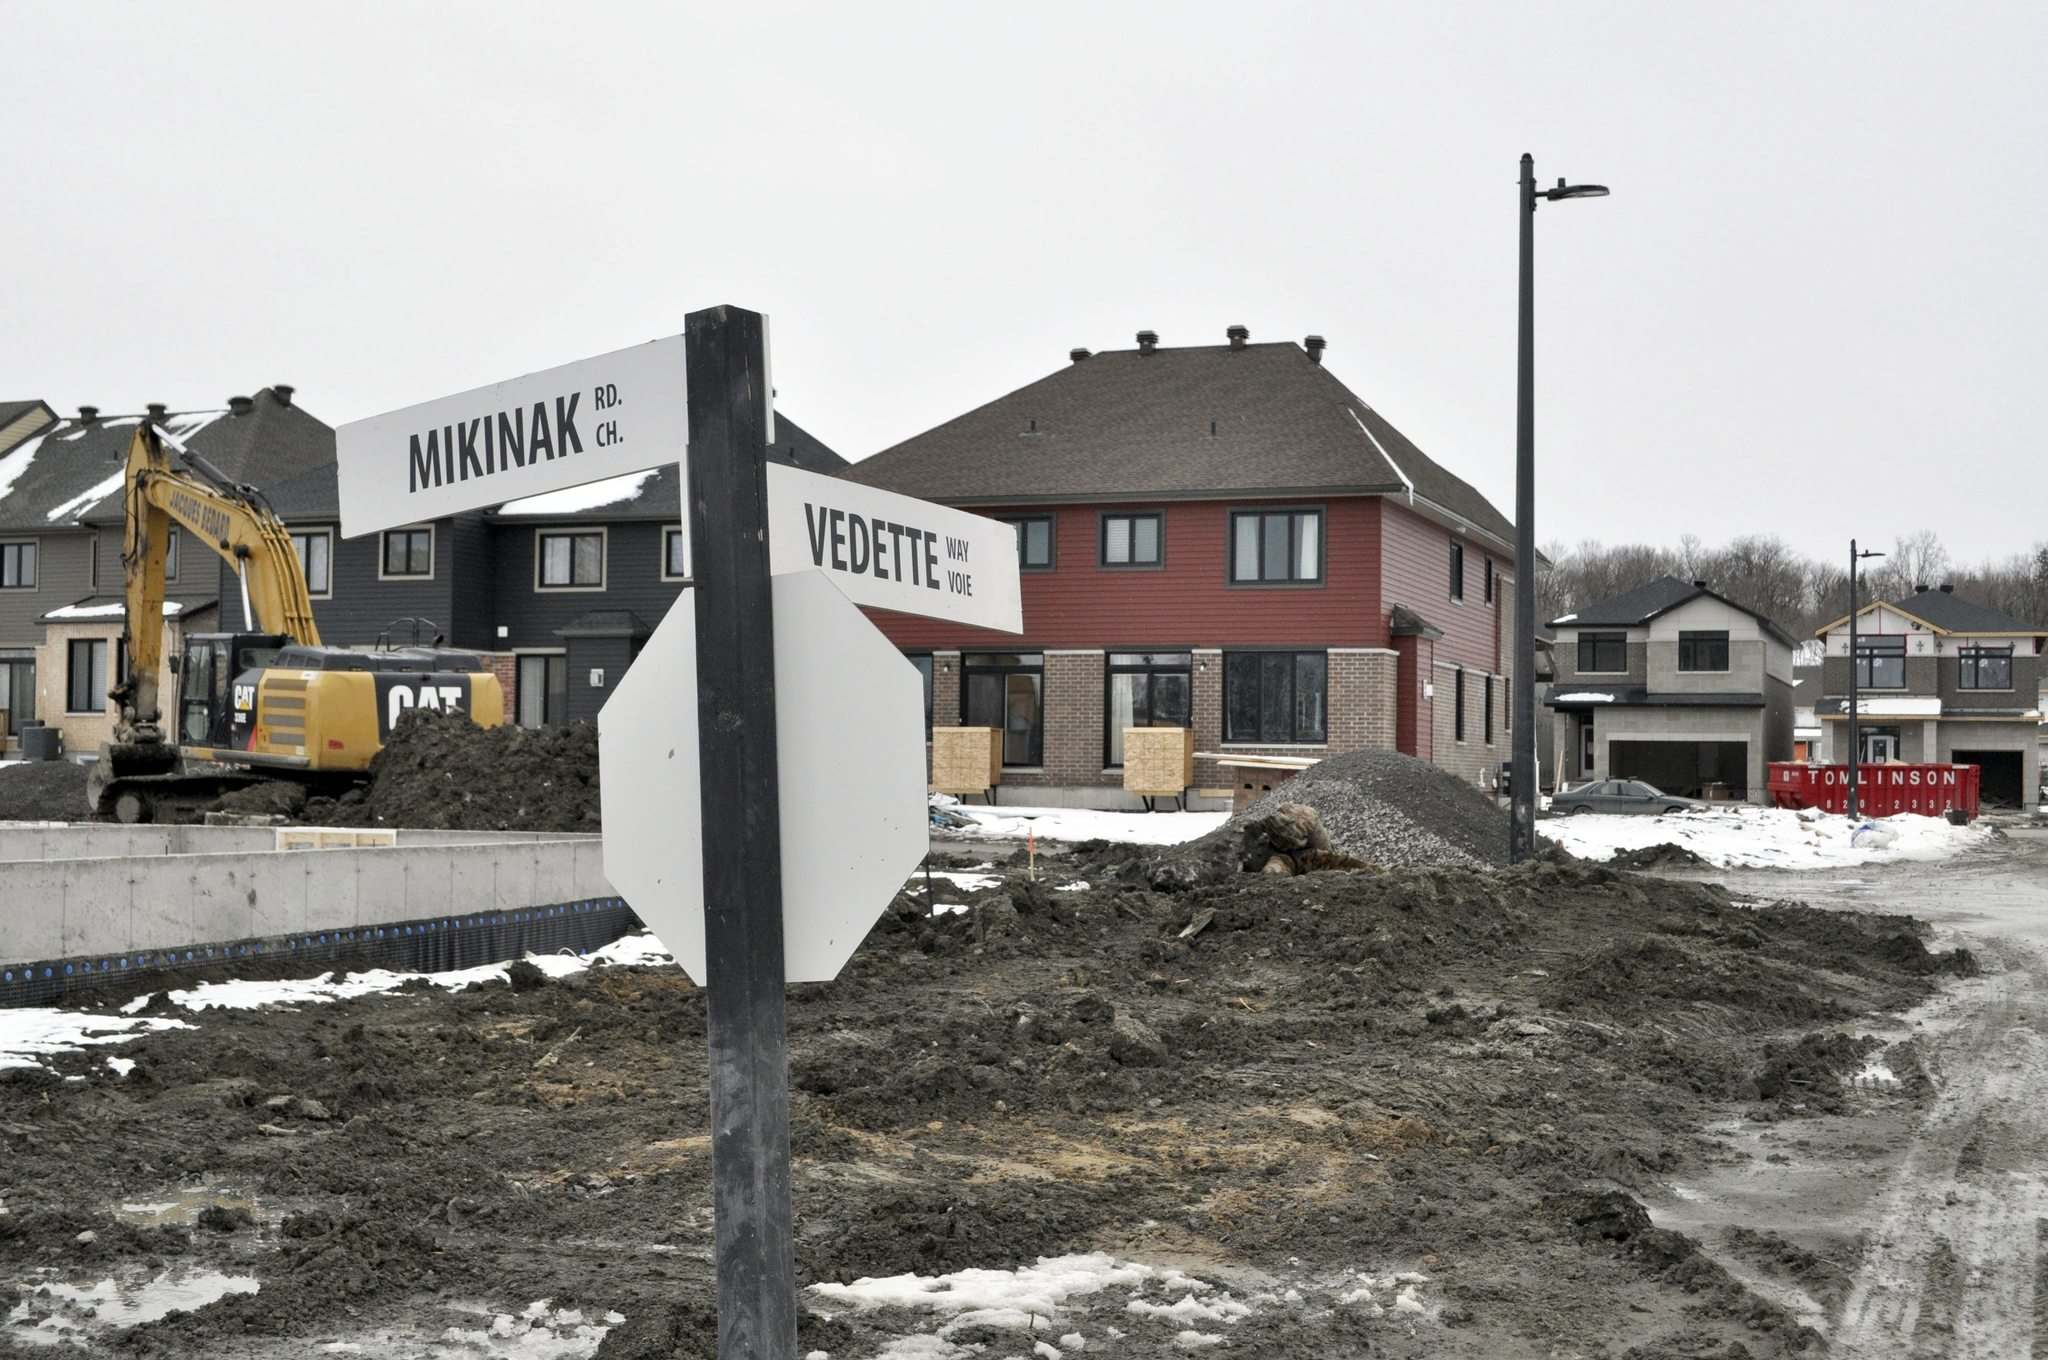 Dylan Robertson / Winnipeg Free Press</p><p>Mikinak Road, named after the Algonquin word for turtle, is, for now, the only outward sign of Indigenous involvement in Wateridge Village.</p>